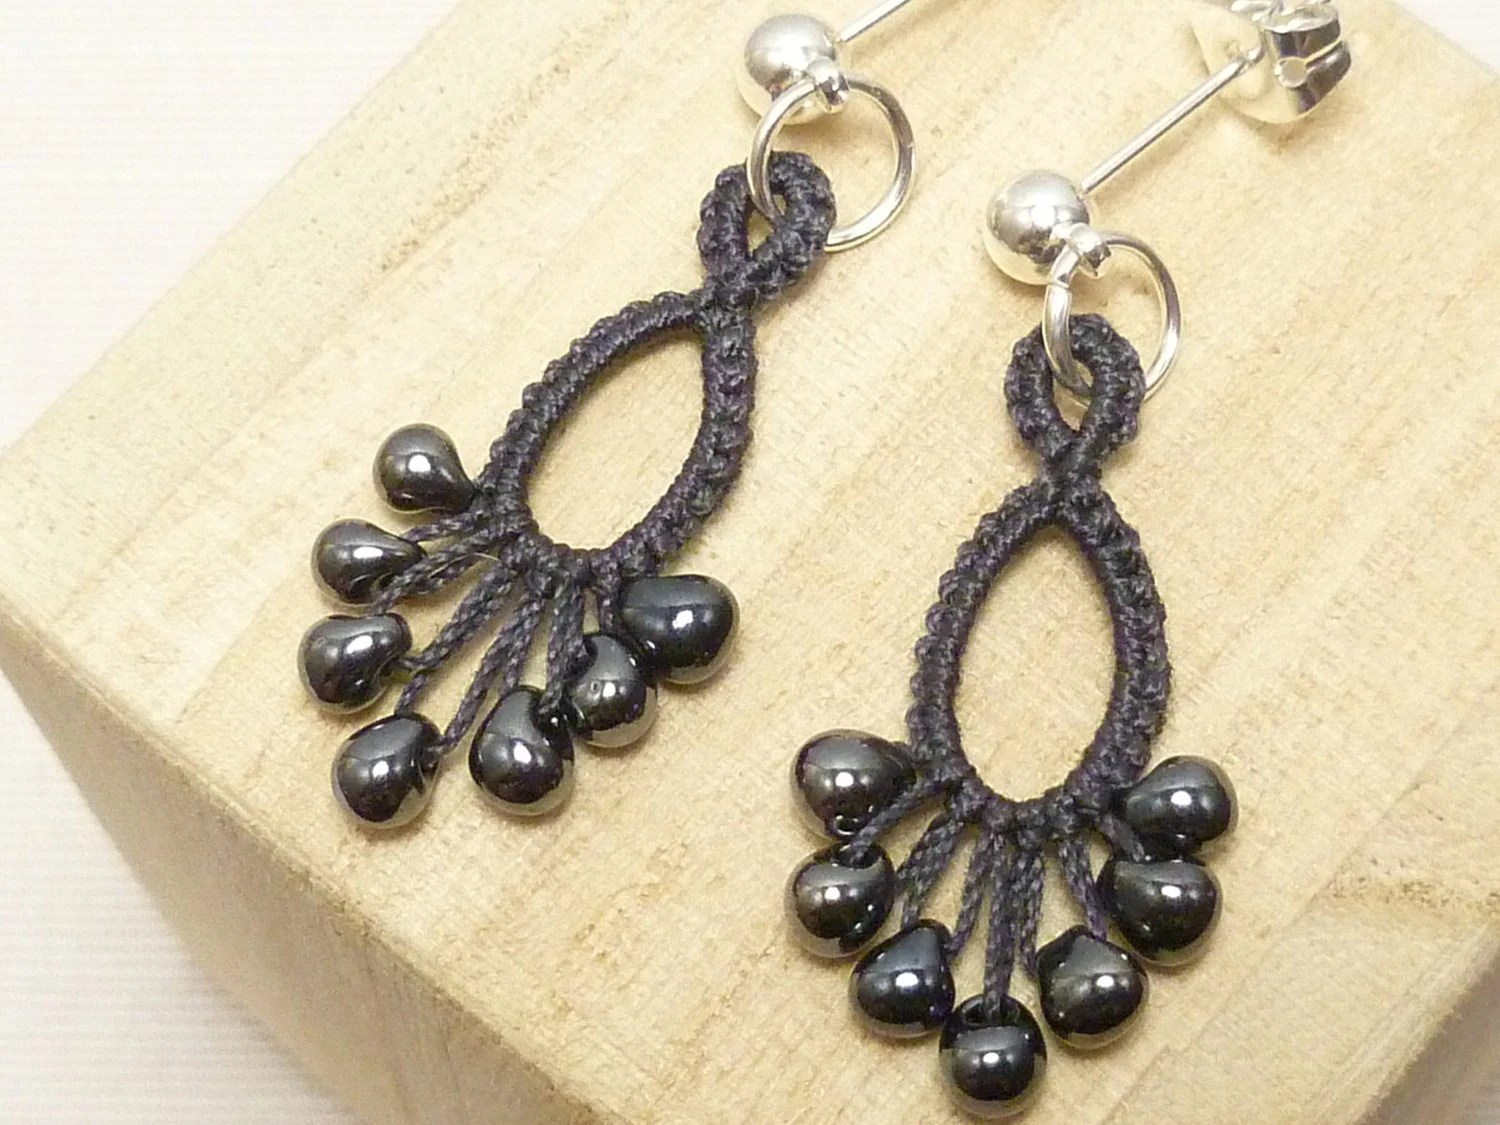 Earrings in Dark Gray Tatting -Flash Drips